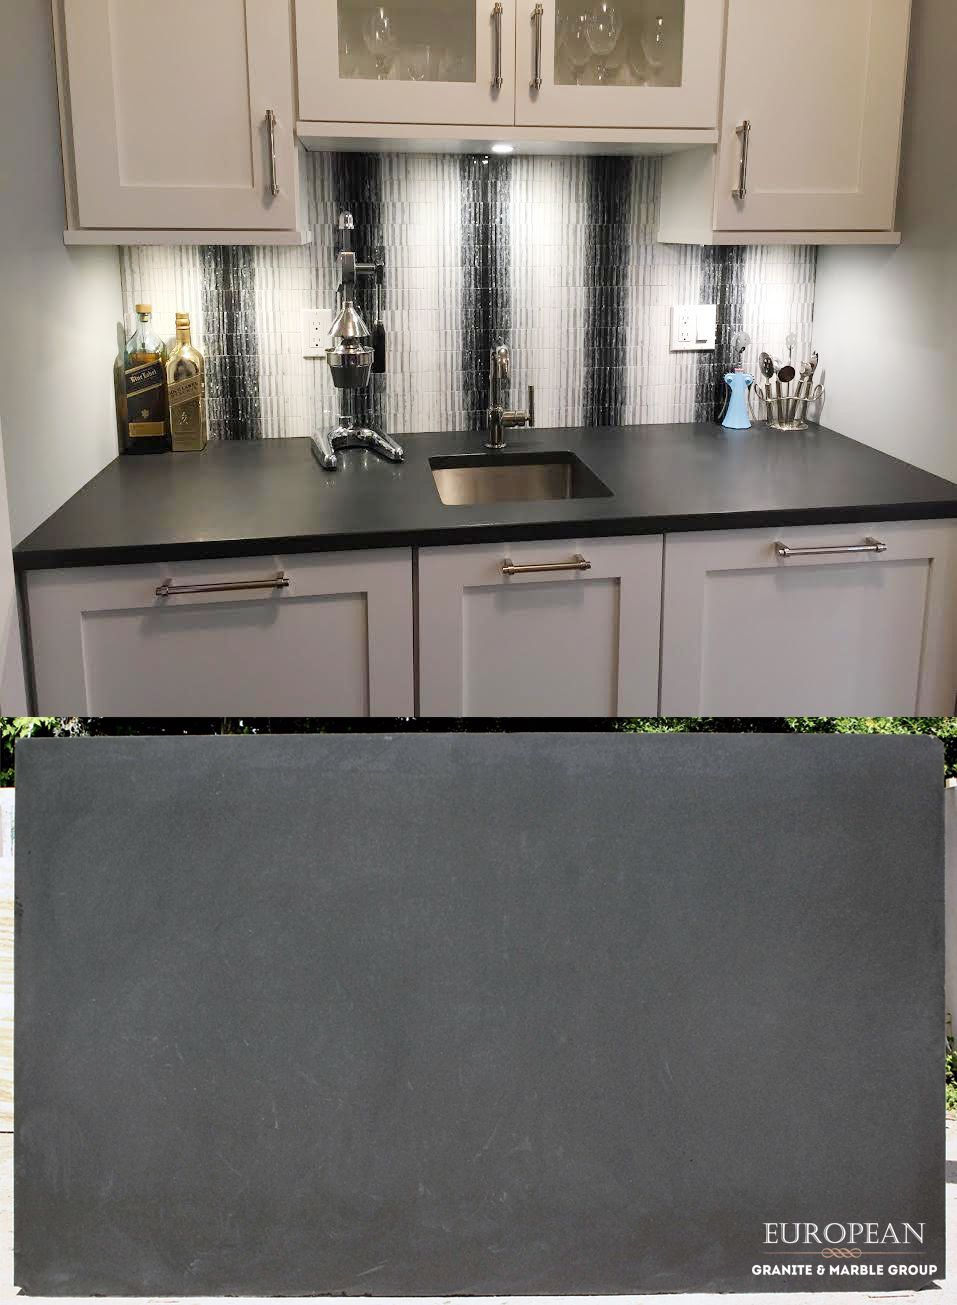 Want A Unique Countertop Surface? This Kitchen Countertop Features U0027Black  Absoluteu0027 Granite In